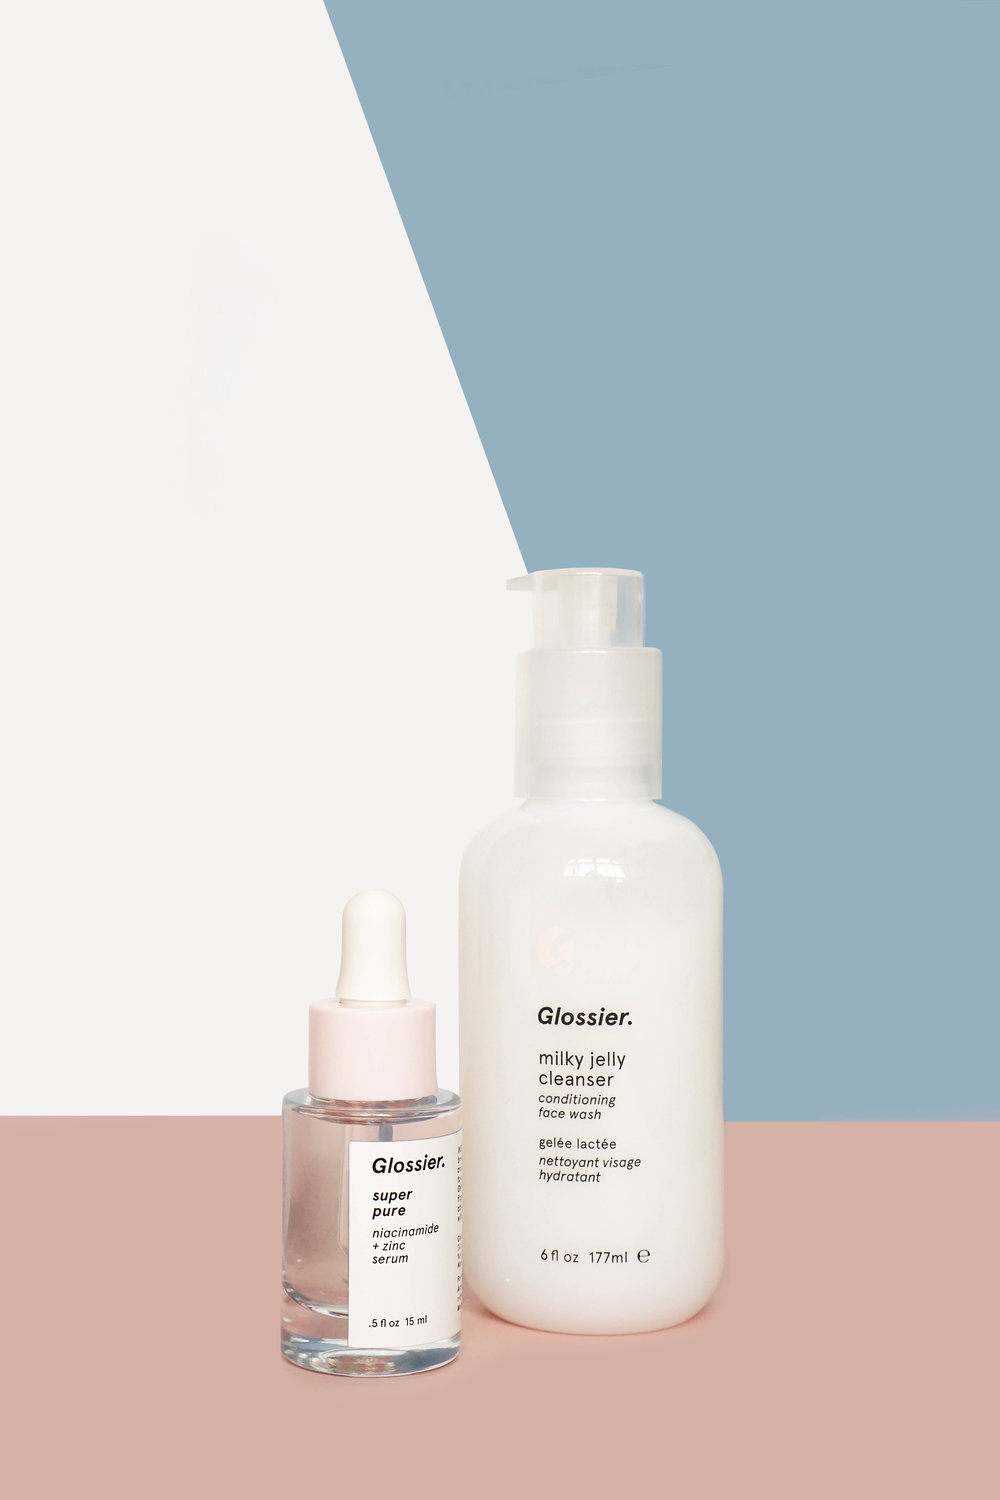 Glossier Styling and Photography